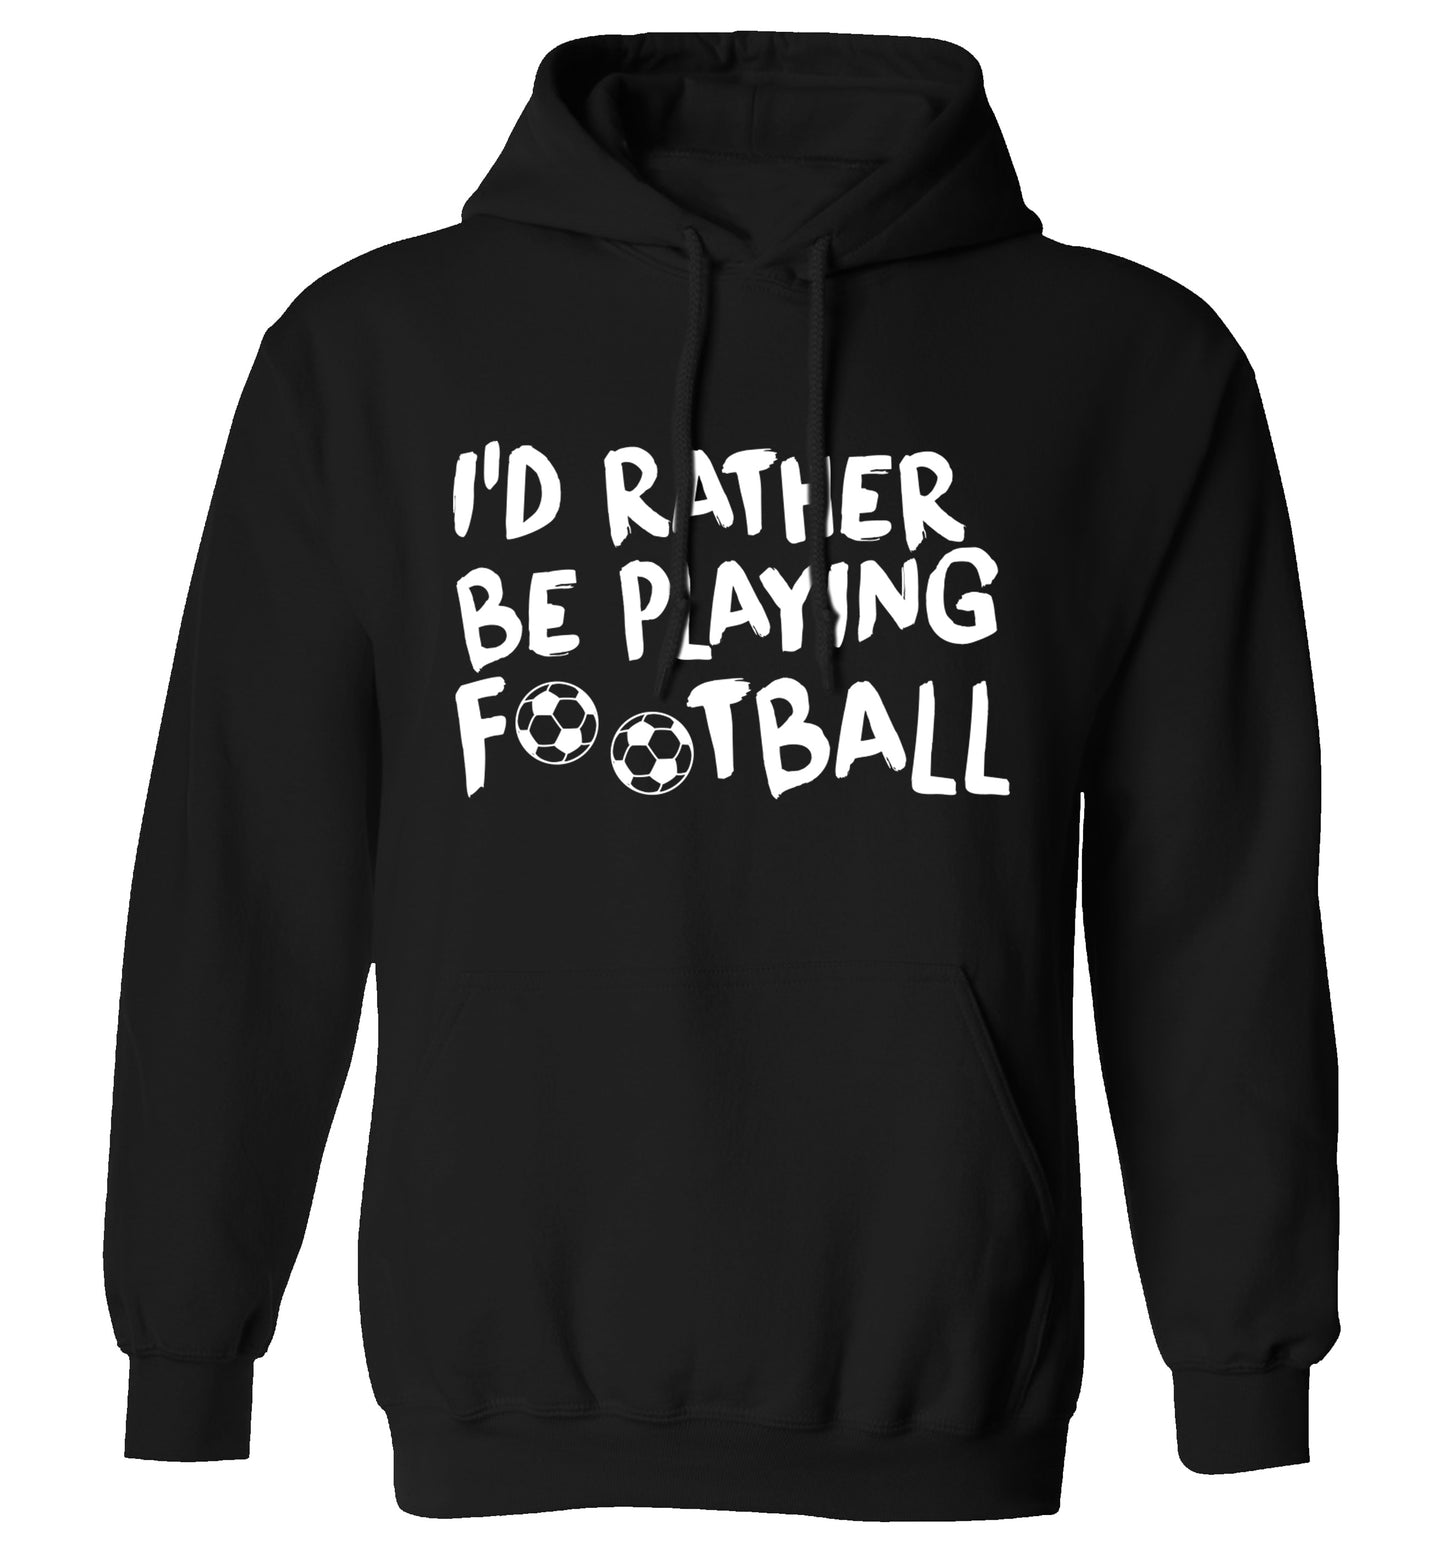 I'd rather be playing football adults unisexblack hoodie 2XL